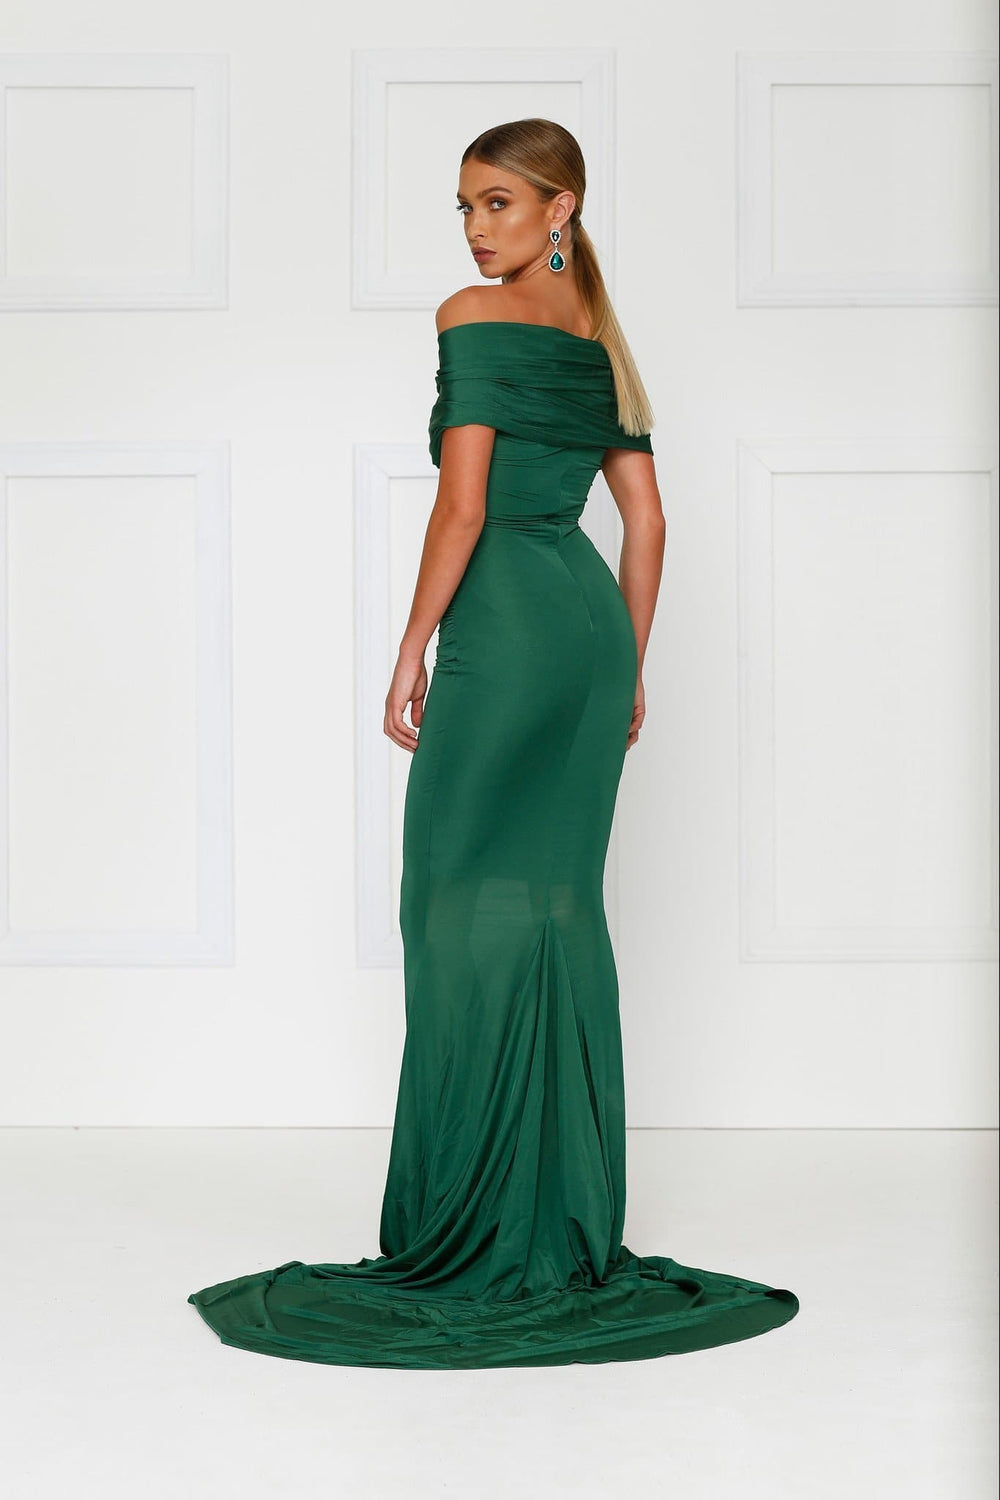 Campanule - Emerald Jersey Gown | Off-Shoulder Sleeves & Mermaid Train